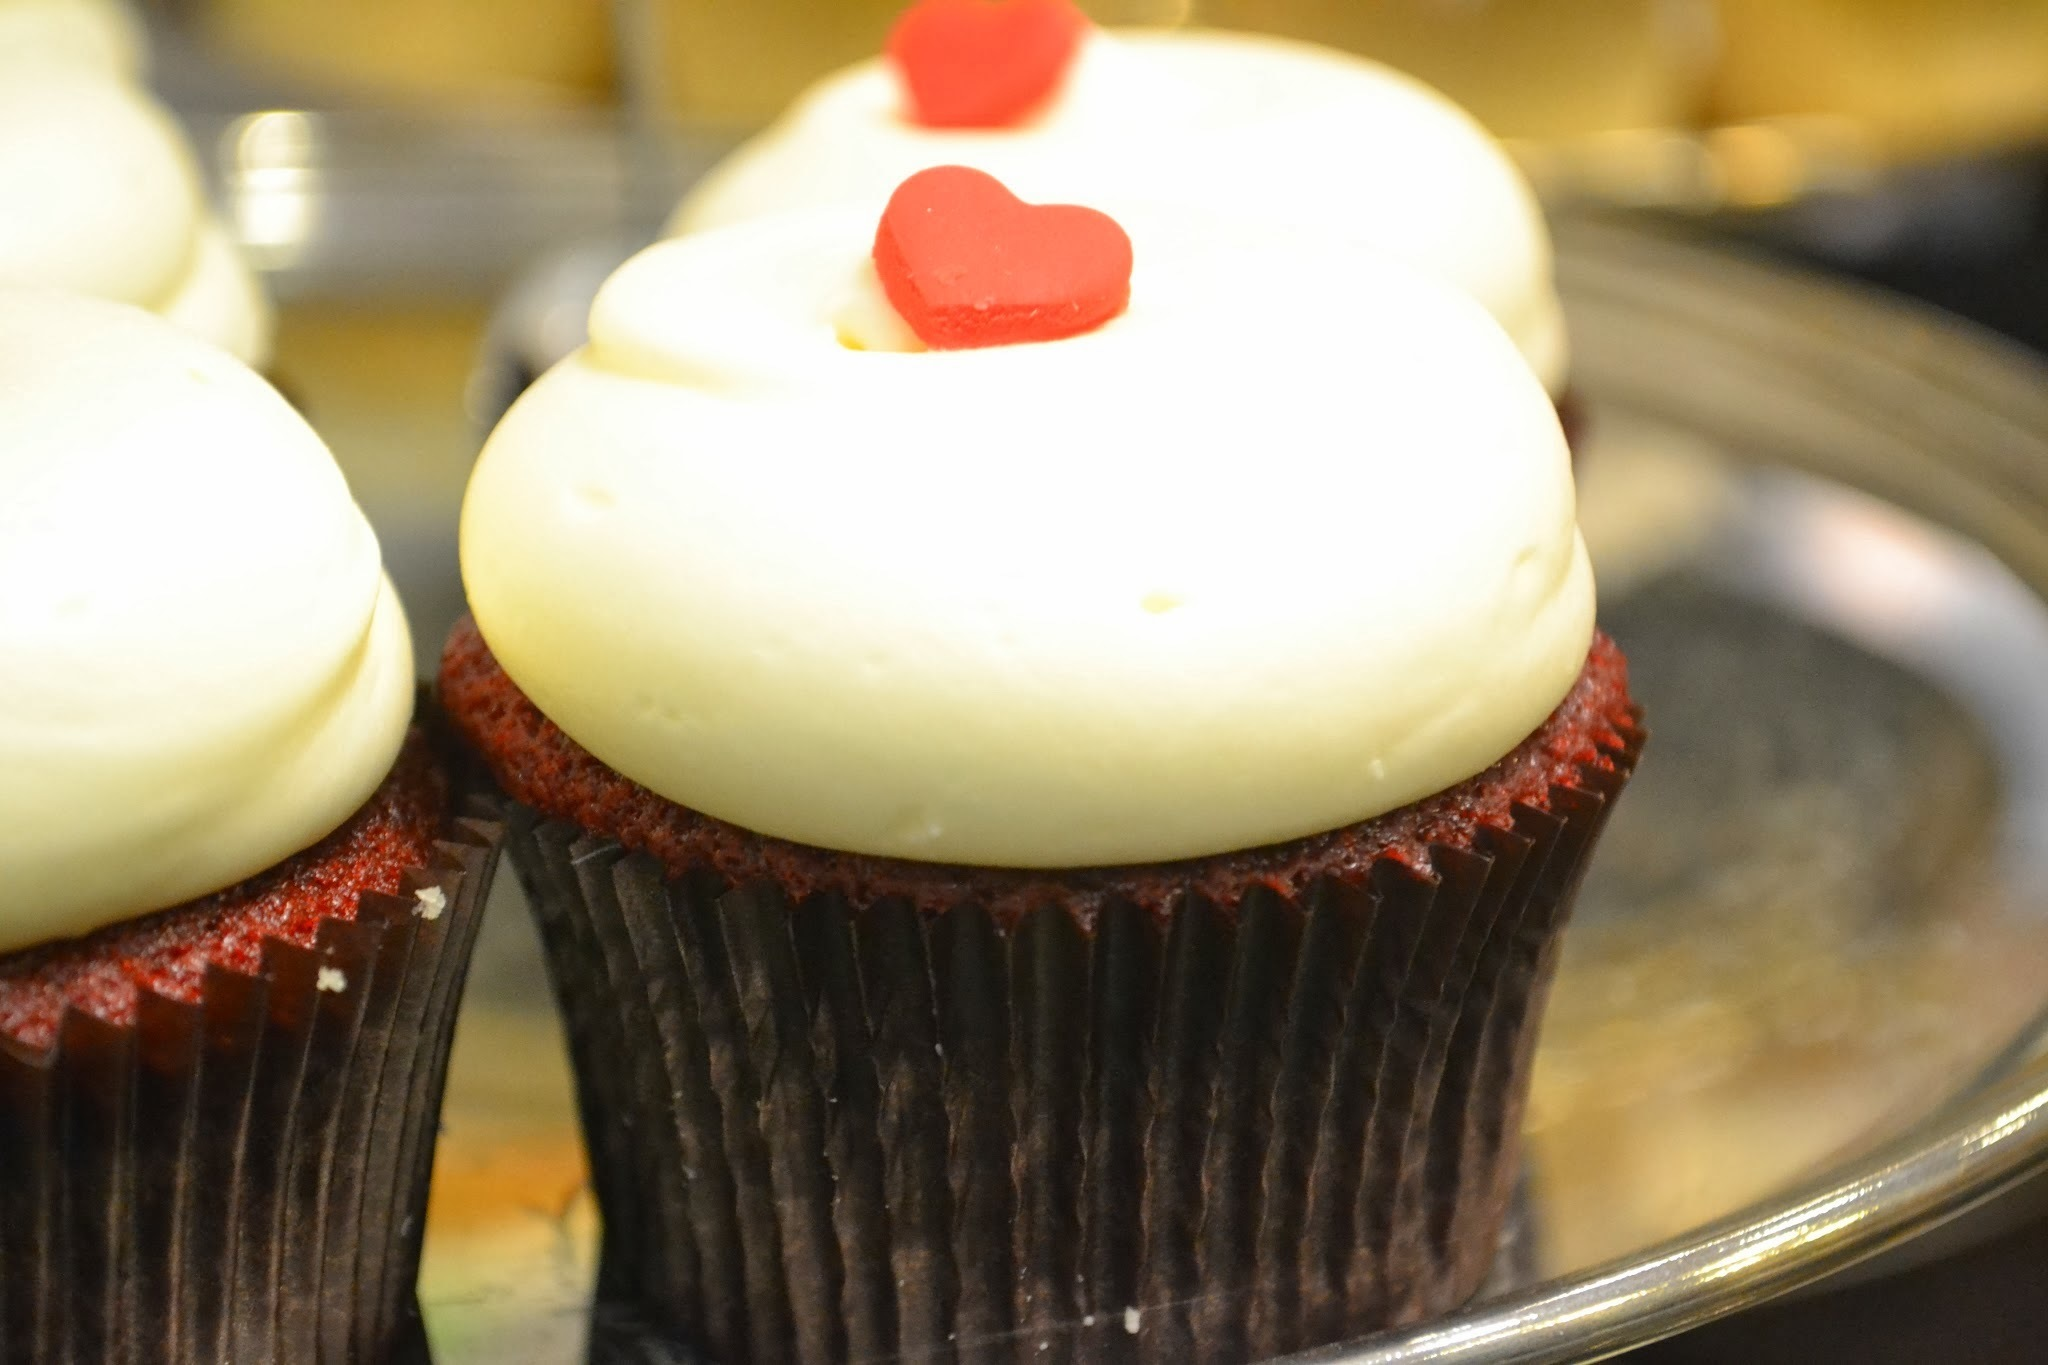 Restaurant Friday: Let Them Eat Cupcakes - 'Georgetown Cupcake'